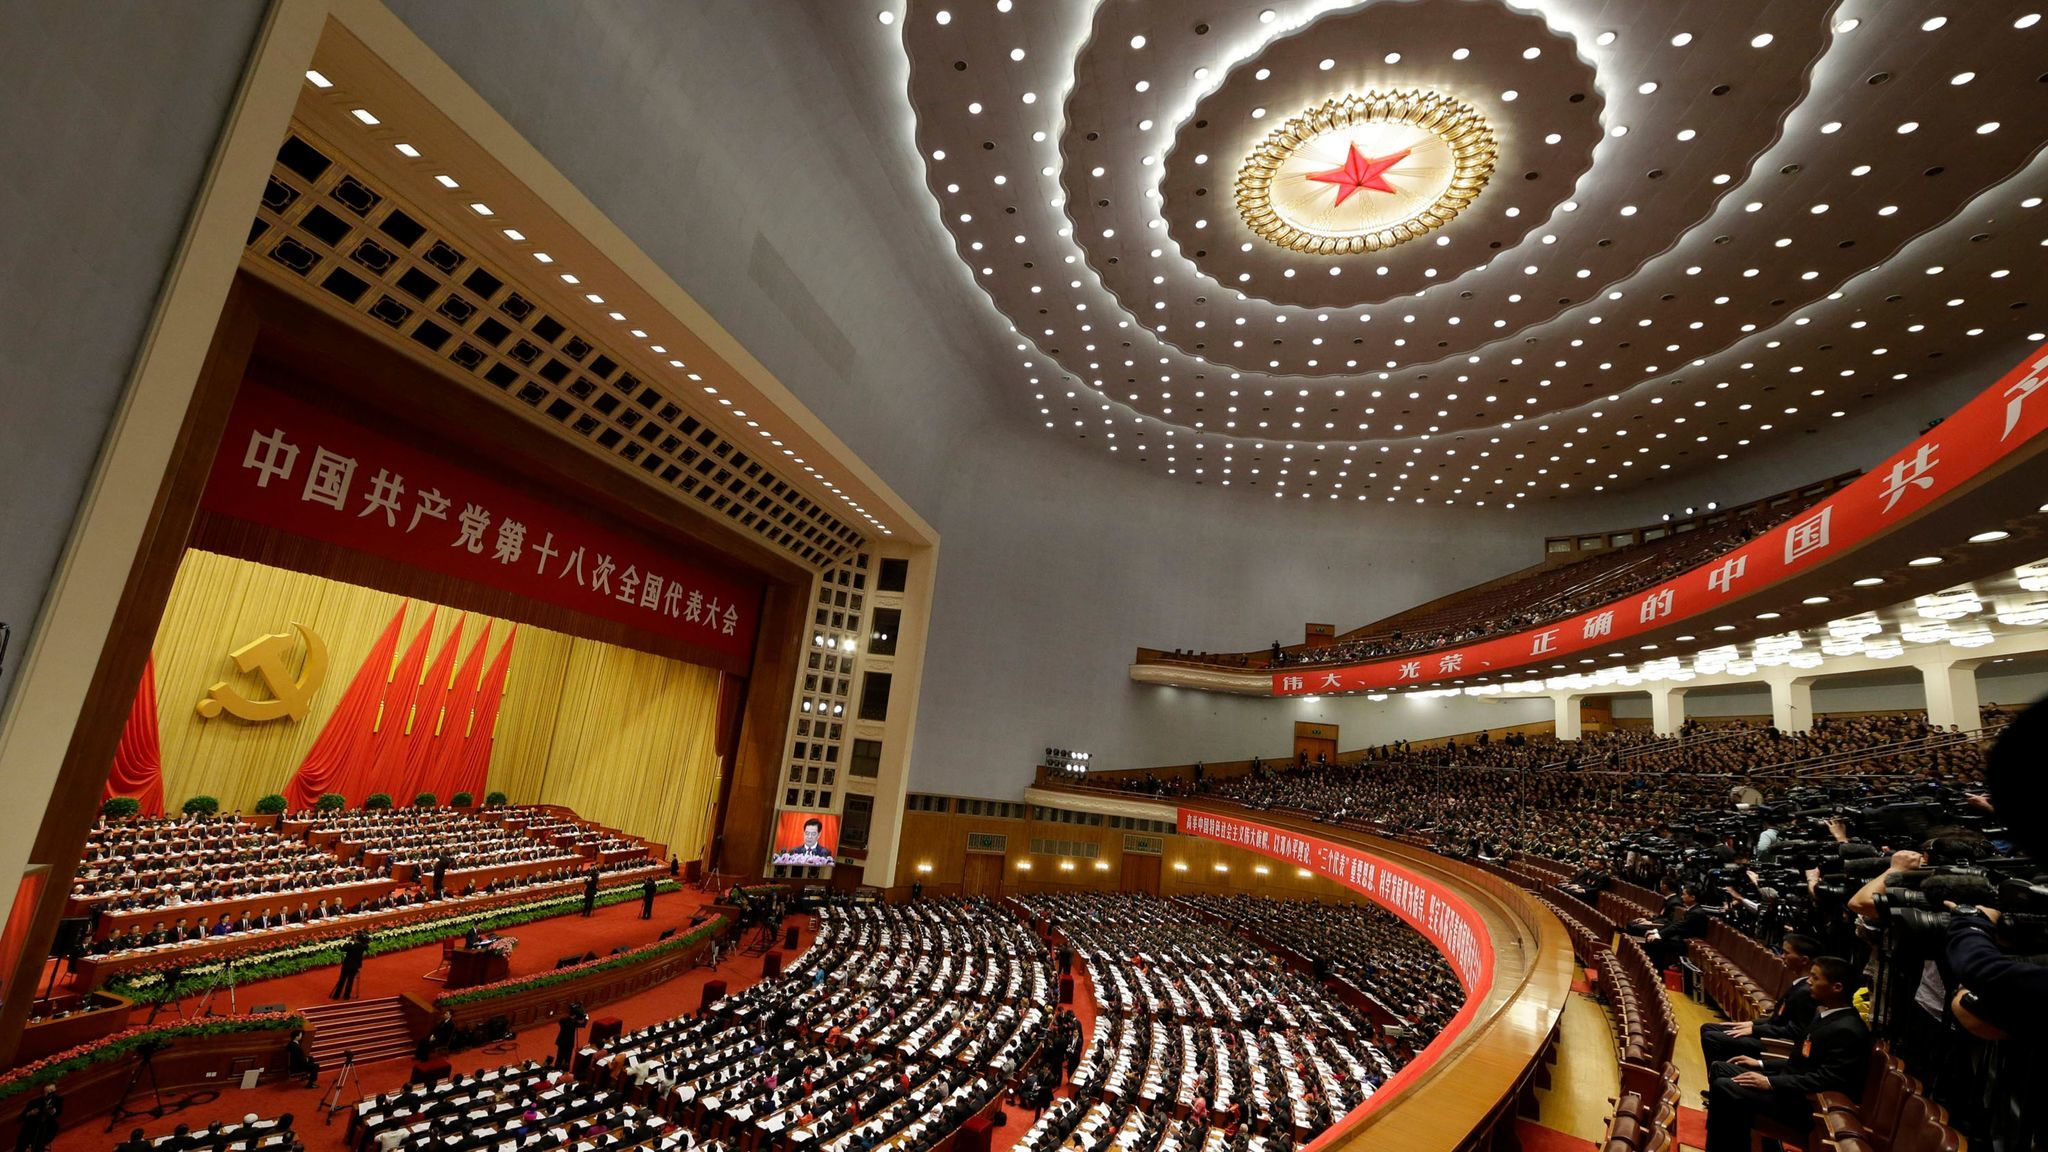 A 2012 file photo showing then-Chinese President Hu Jintao, center on the stage, at the 18th Communist Party congress held at the Great Hall of the People in Beijing.